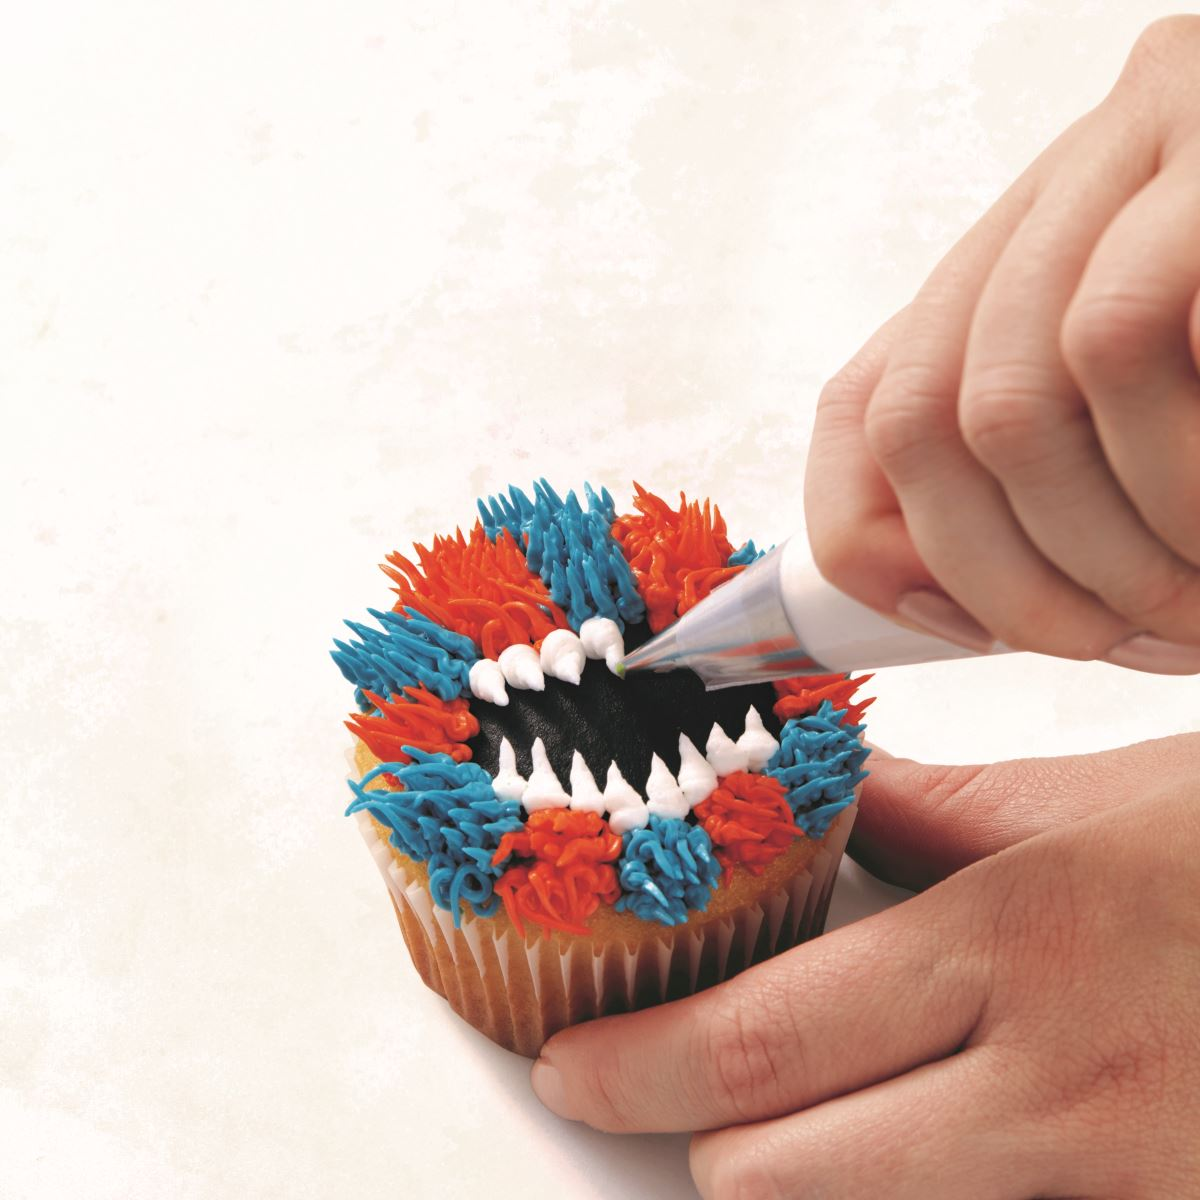 BLUE AND ORANGE MONSTER CUPCAKE step 6